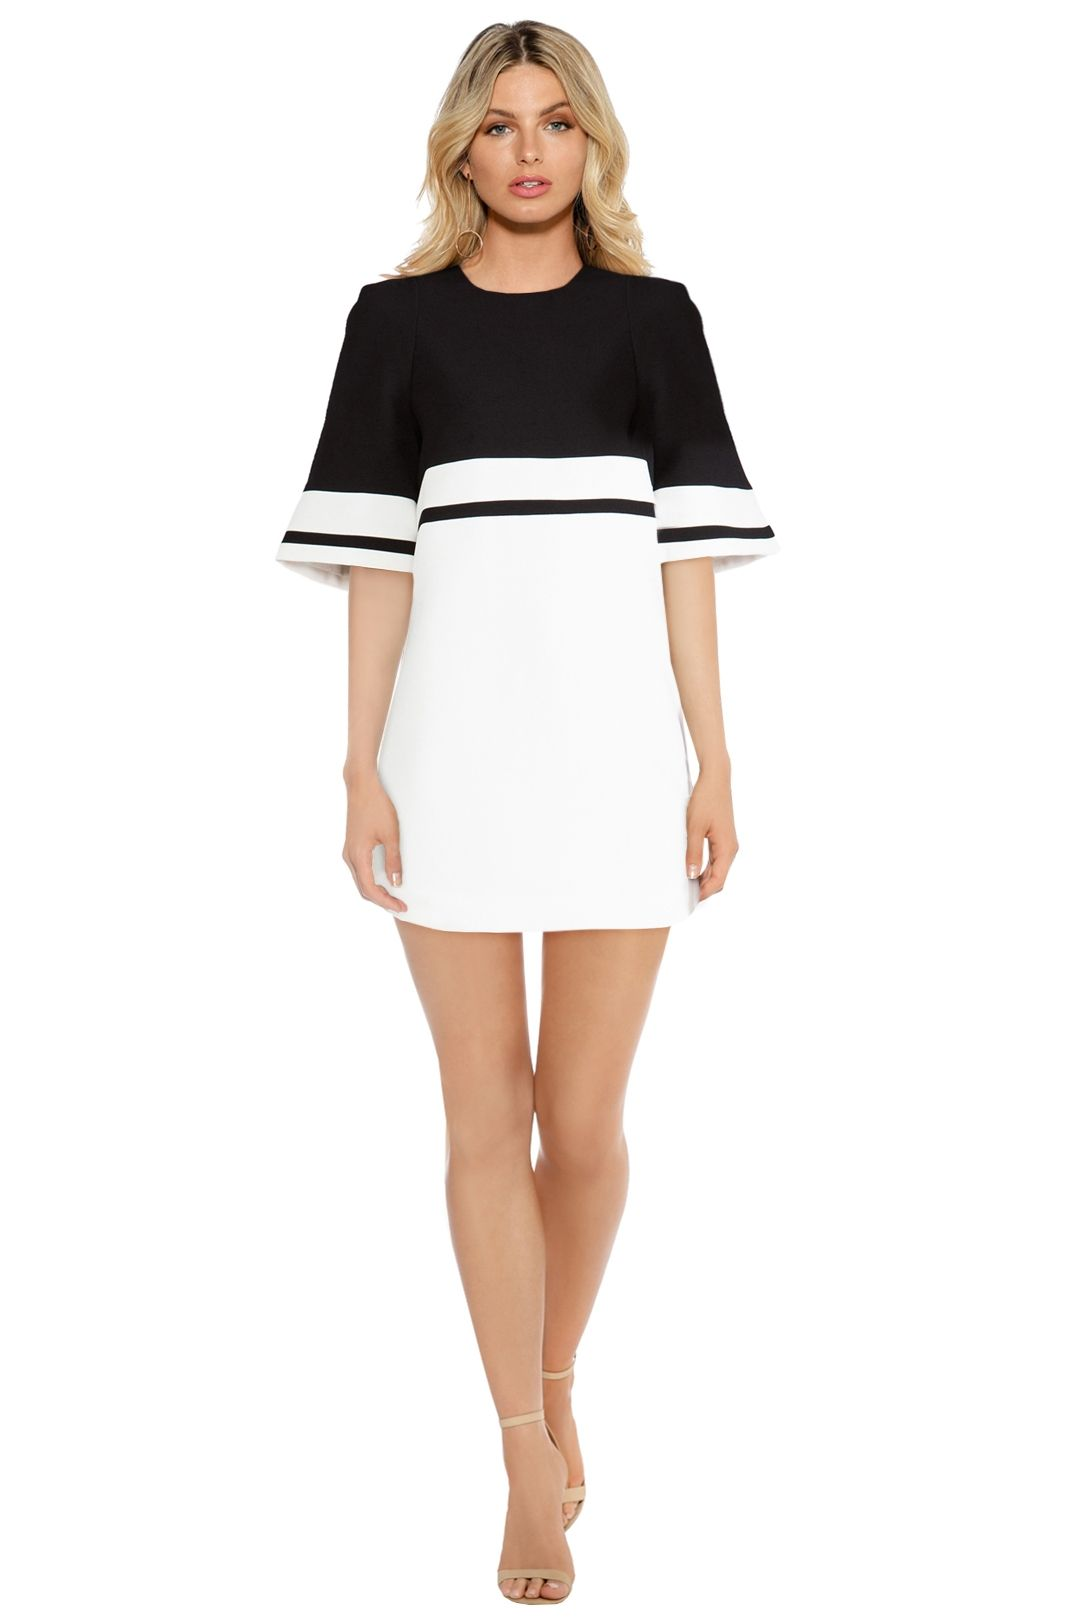 C/MEO Collective - We Are Young Dress - Black White - Front